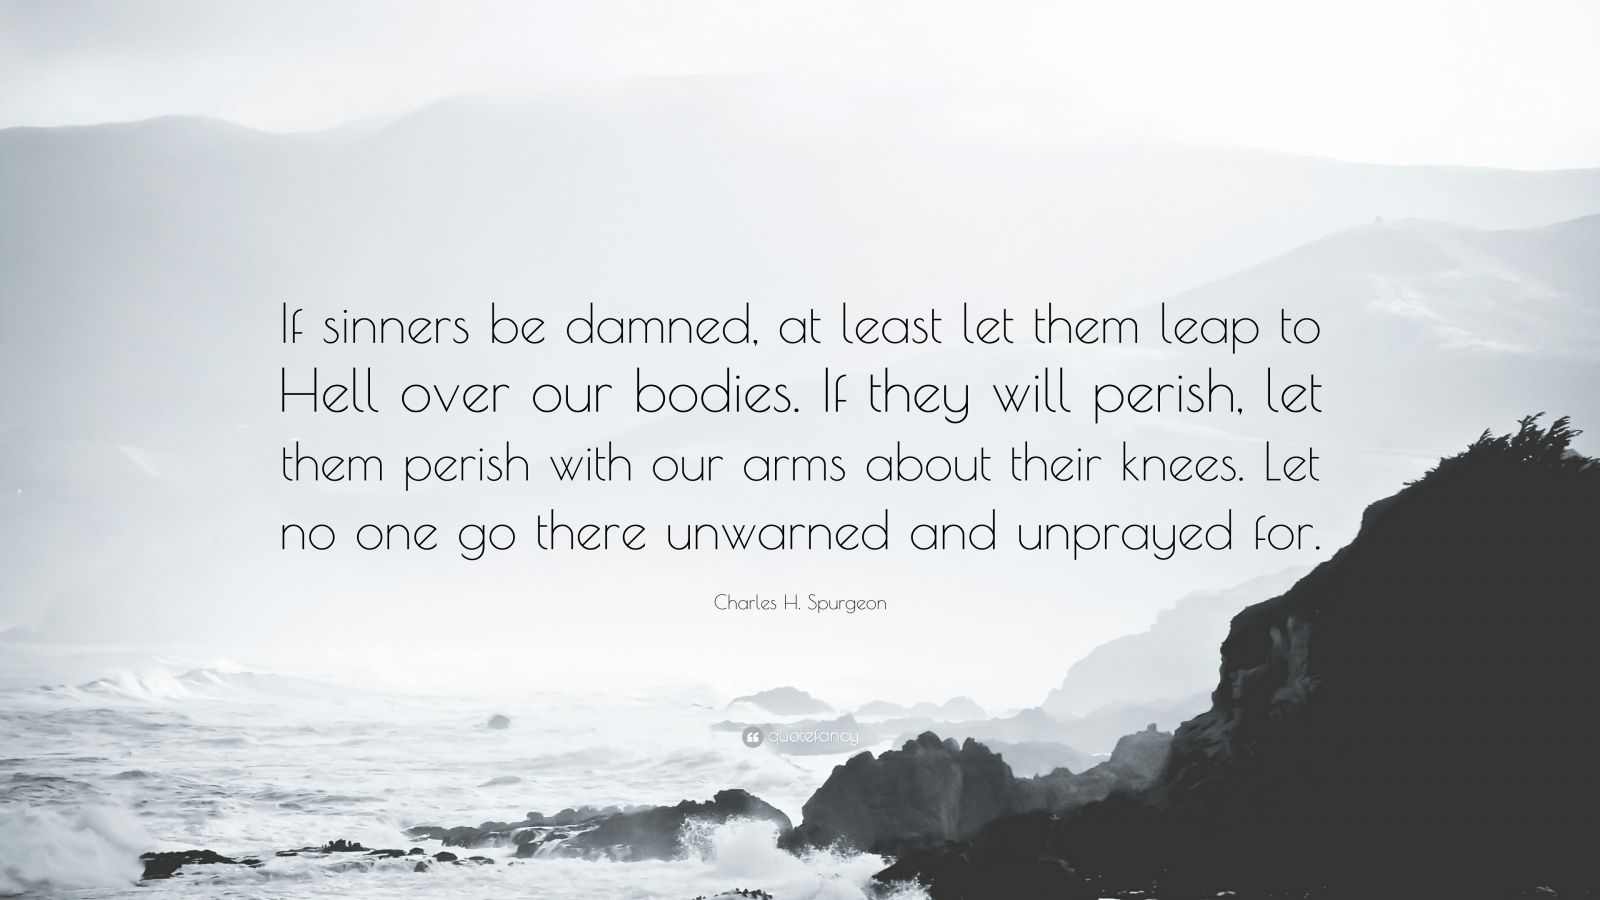 """Charles H. Spurgeon Quote: """"If sinners be damned, at least let them leap to Hell over our bodies. If they will perish, let them perish with our arms about their knees. Let no one go there unwarned and unprayed for."""""""